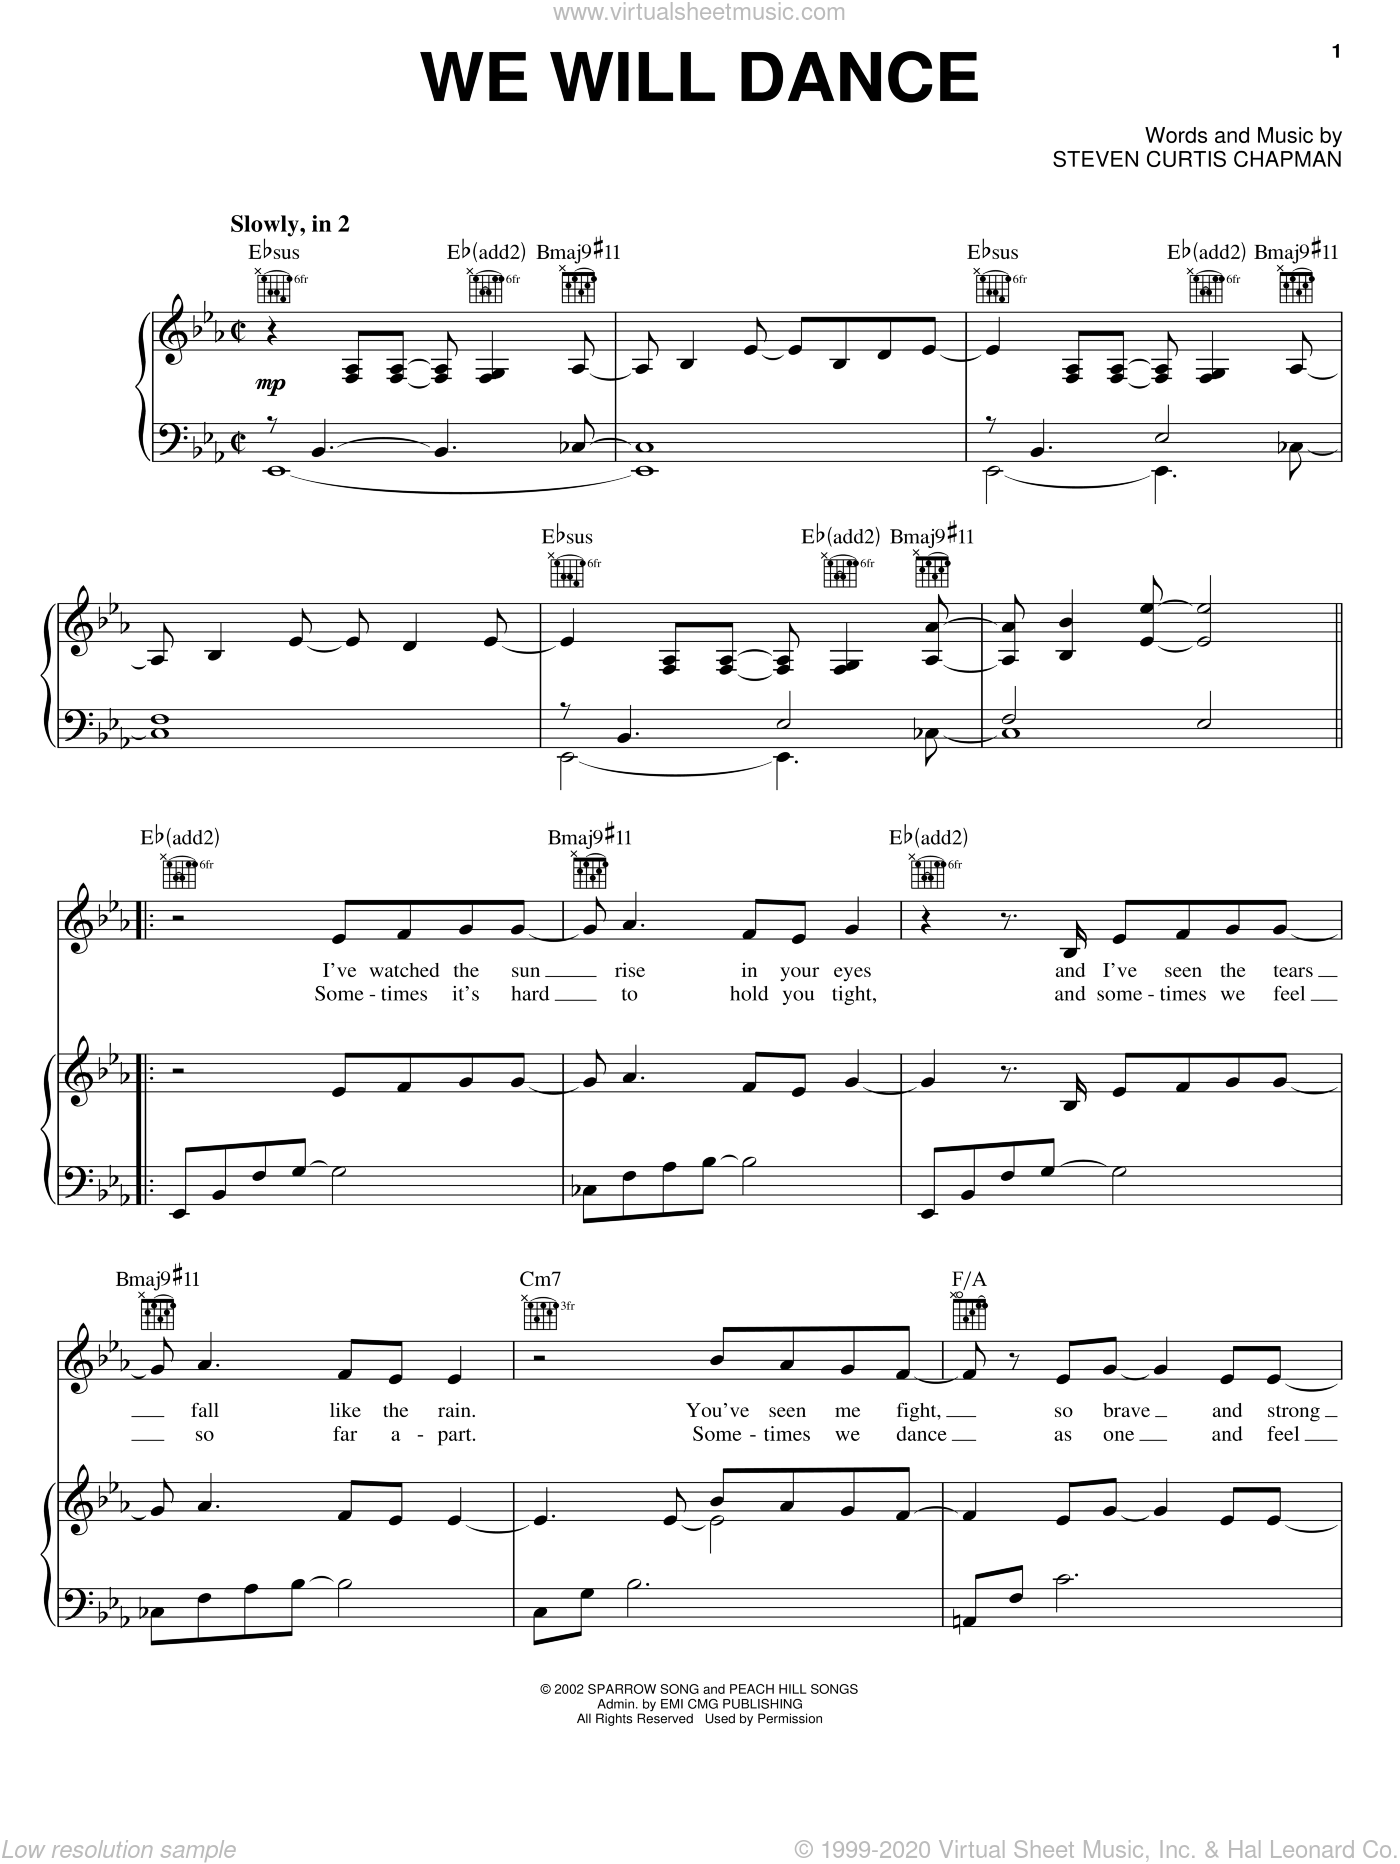 We Will Dance sheet music for voice, piano or guitar by Steven Curtis Chapman. Score Image Preview.